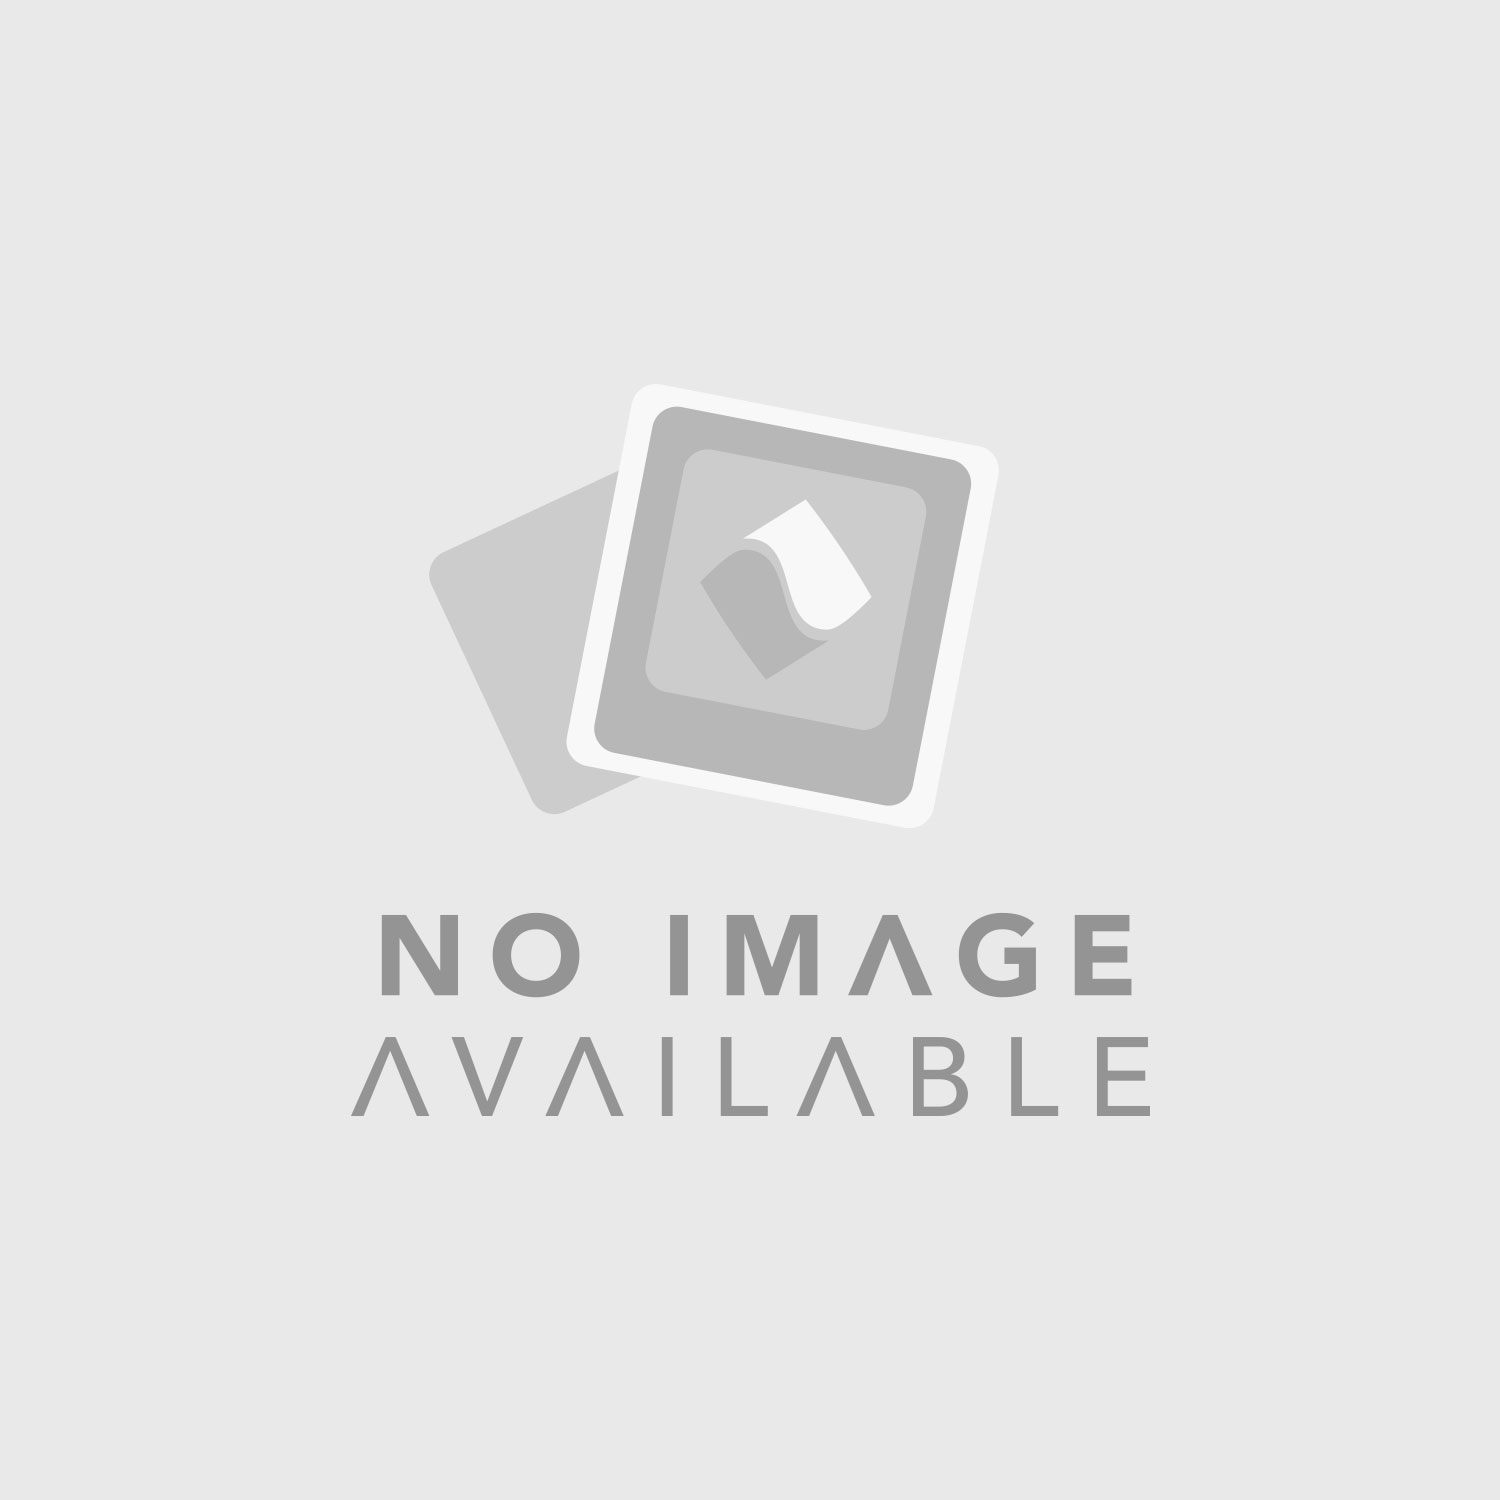 Yamaha HS5I 2-Way Bi-Amp Powered Studio Monitor (Single, Black)